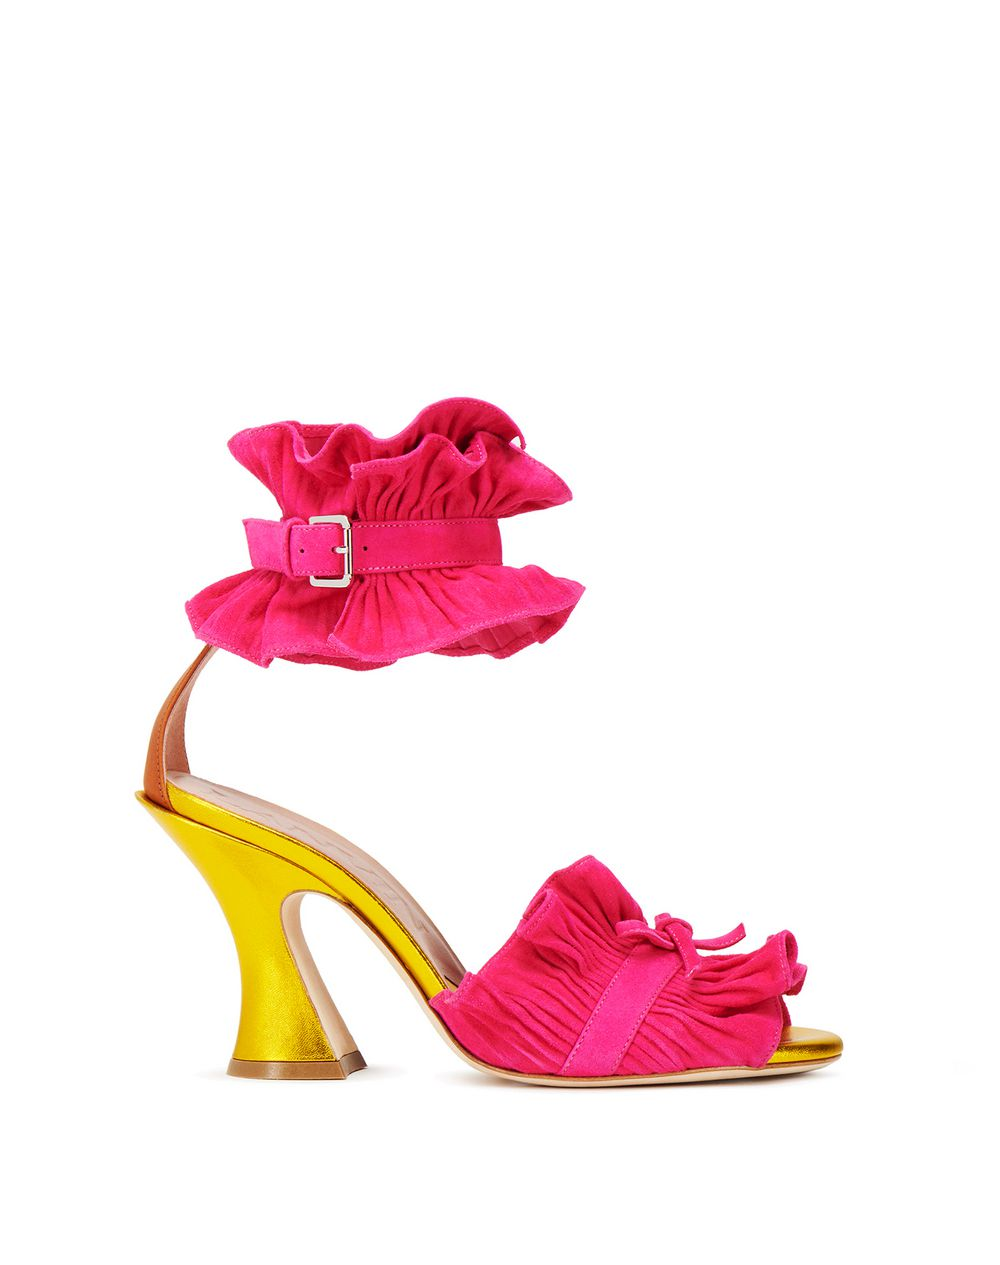 PLEATED HIGH-HEELED SANDAL - Lanvin